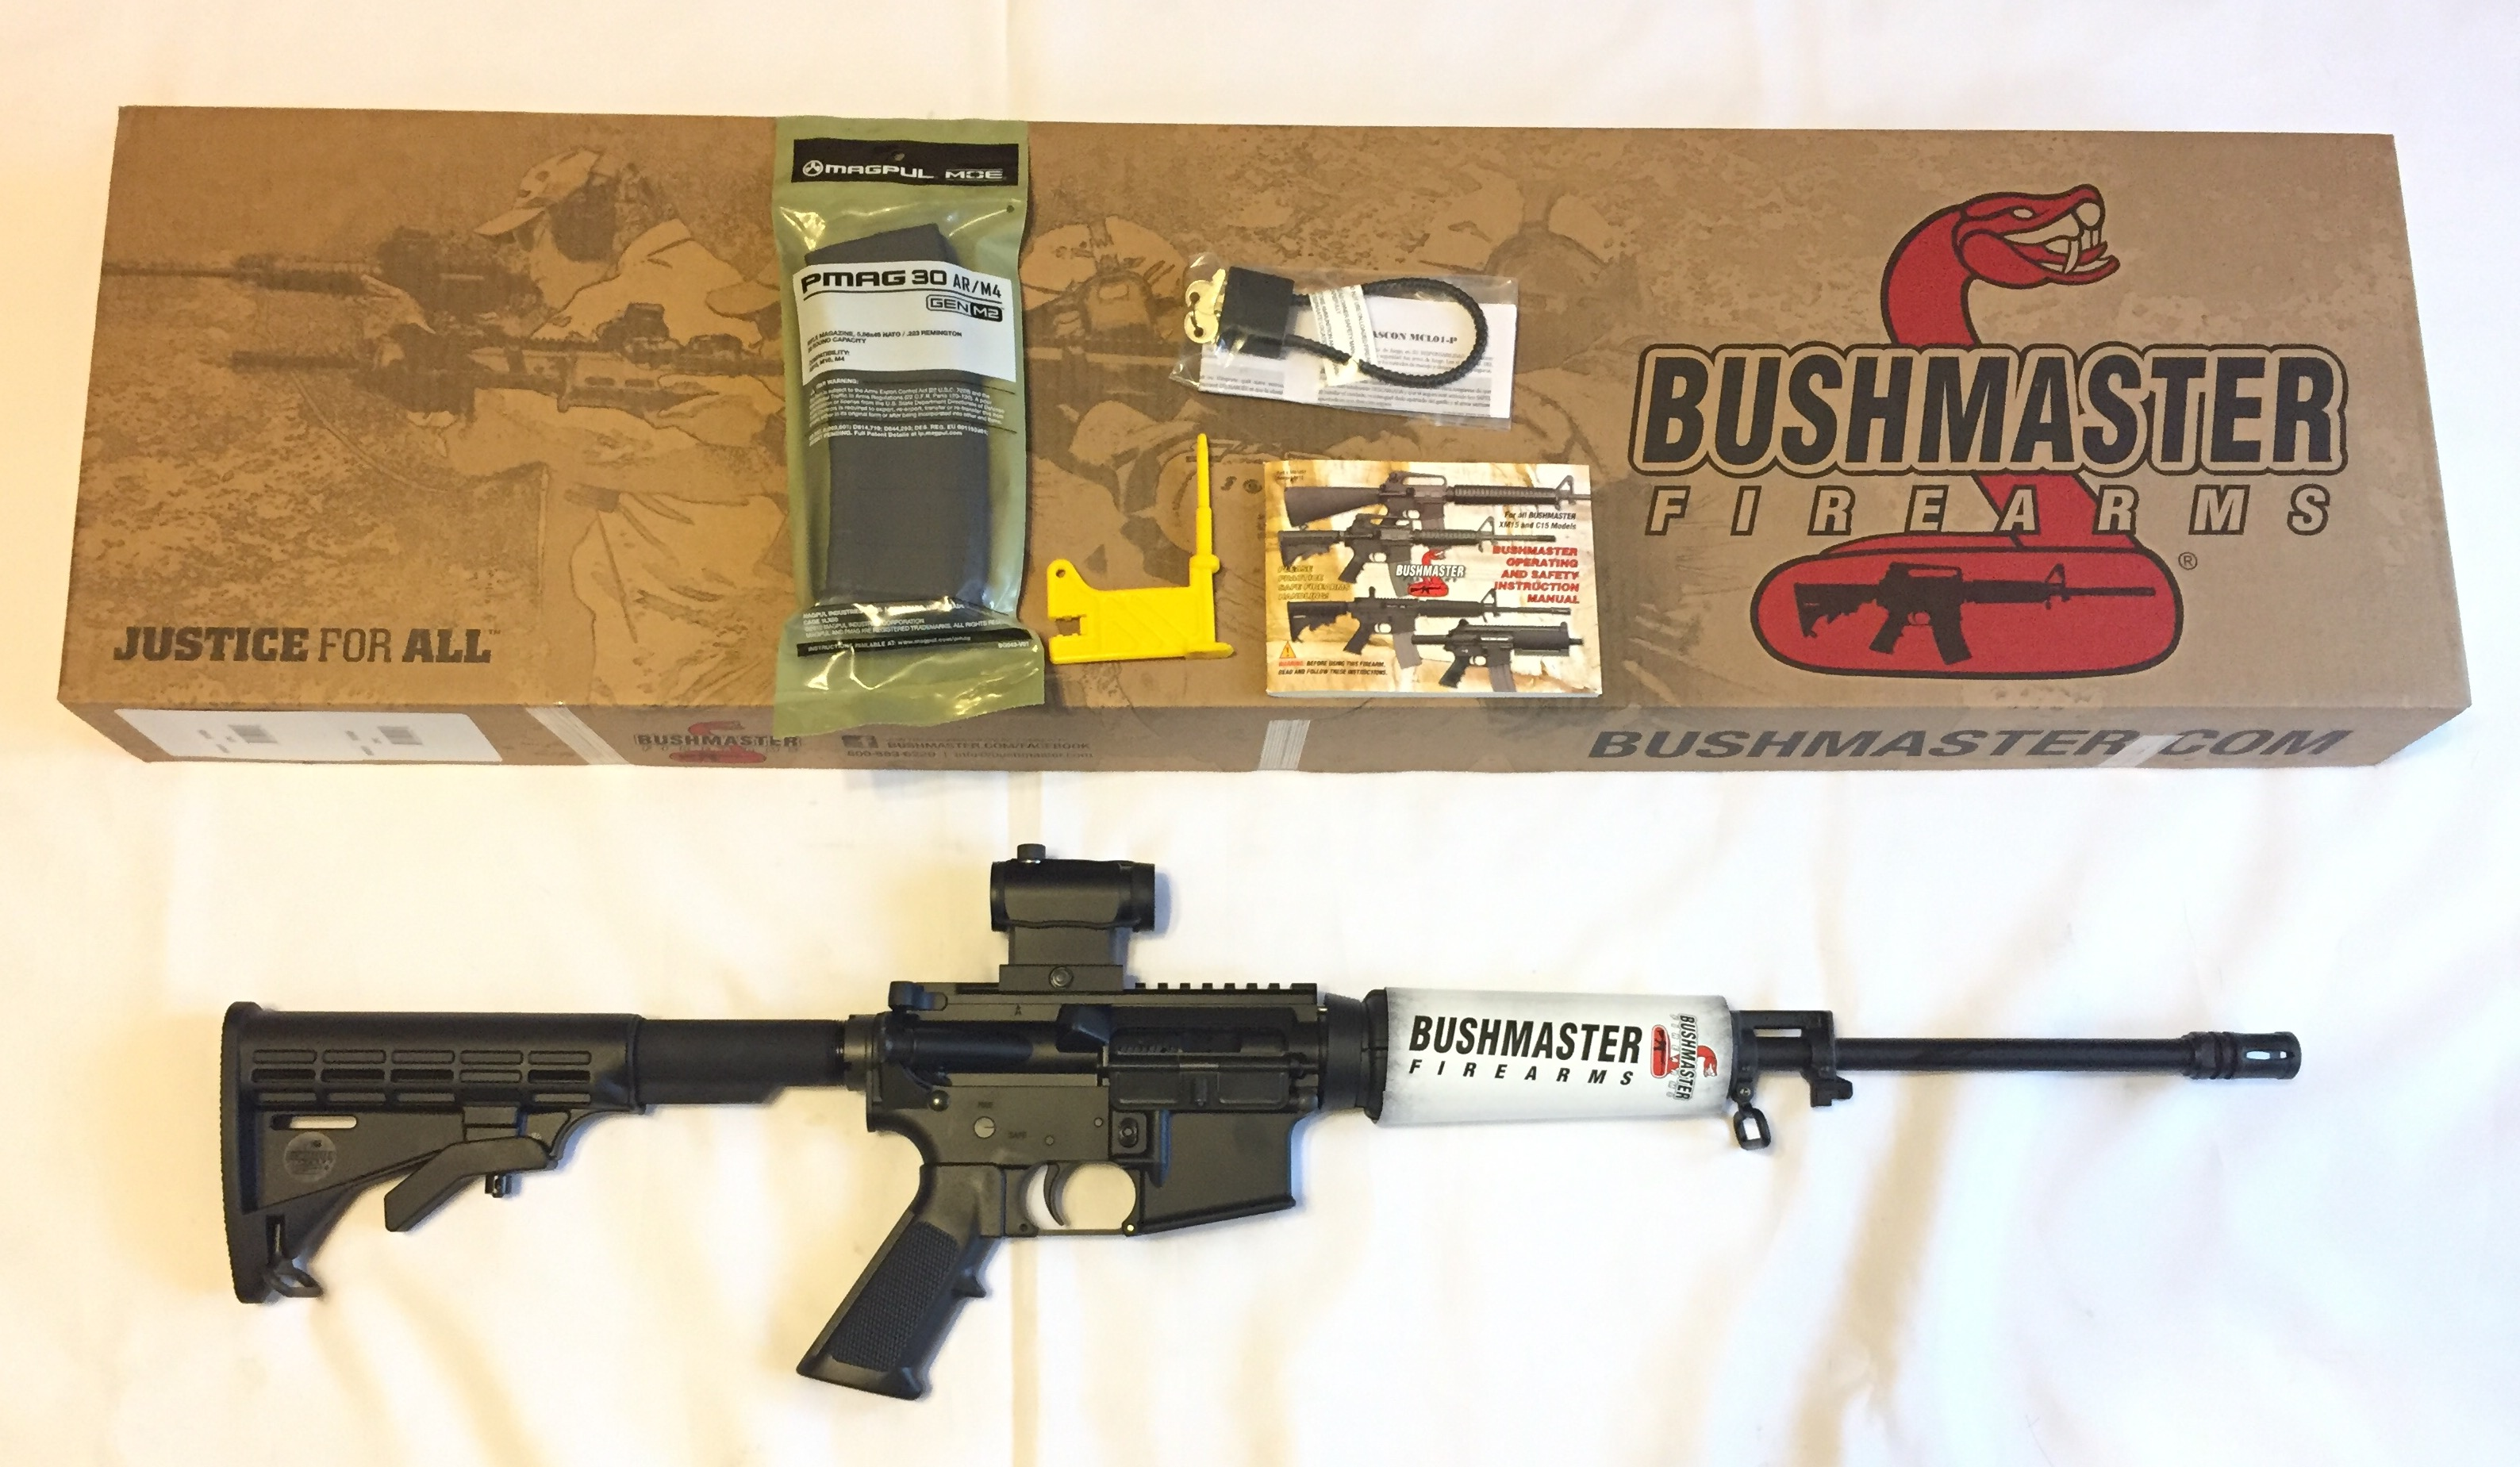 Bushmaster QRC XM-15 RED DOT AR15 91046 5 56  223